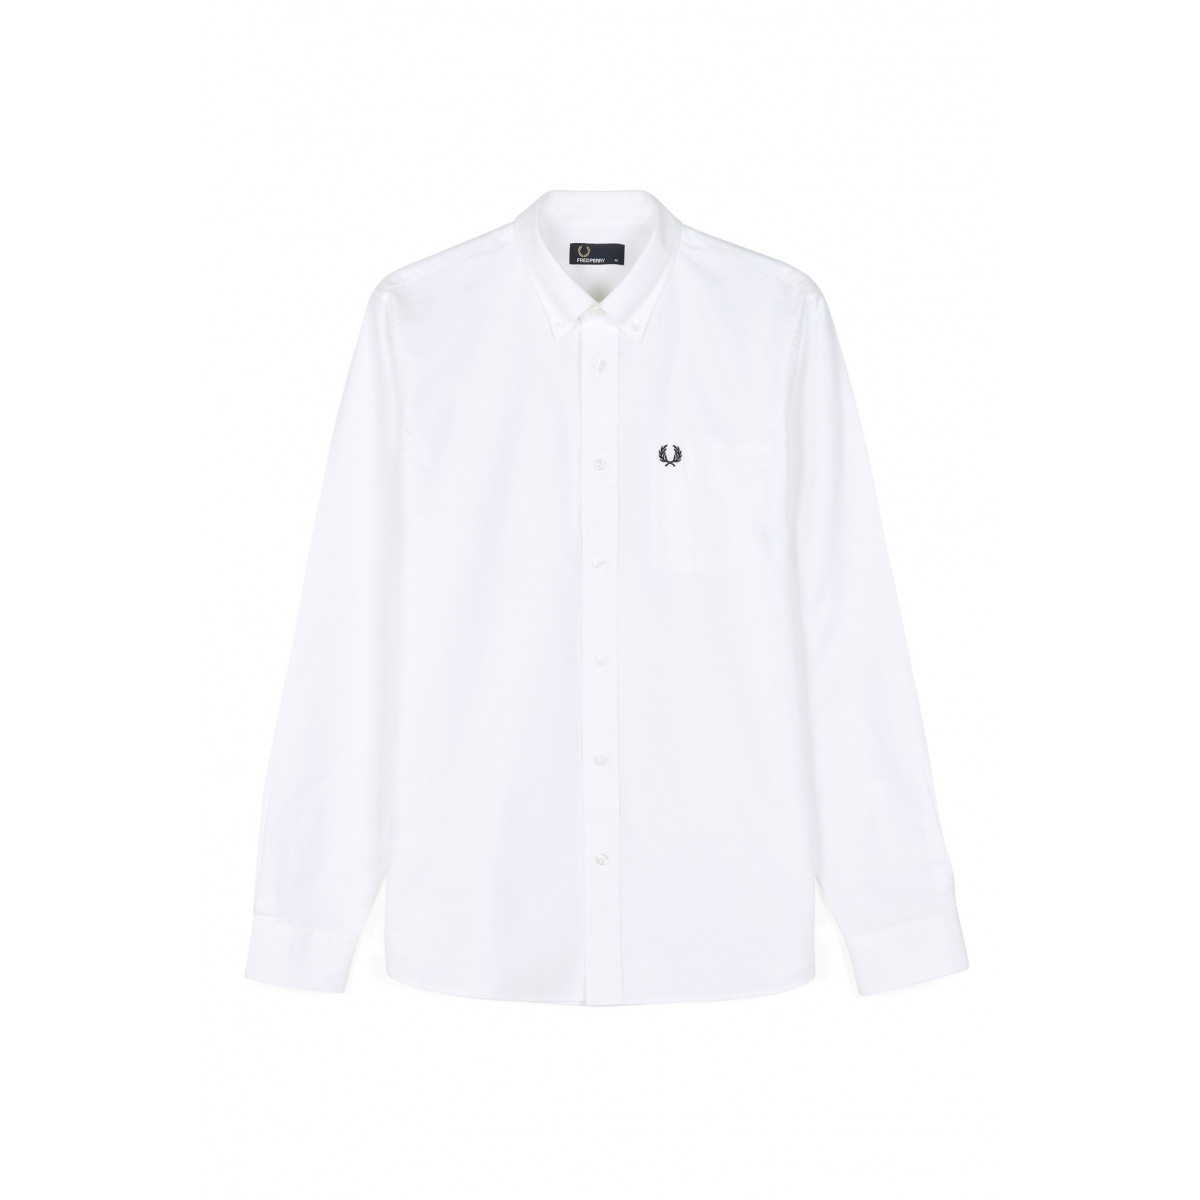 new product 71627 36757 FRED PERRY - Camicia SM1603-21 100 - Shirts - MAN - Gruppo ...